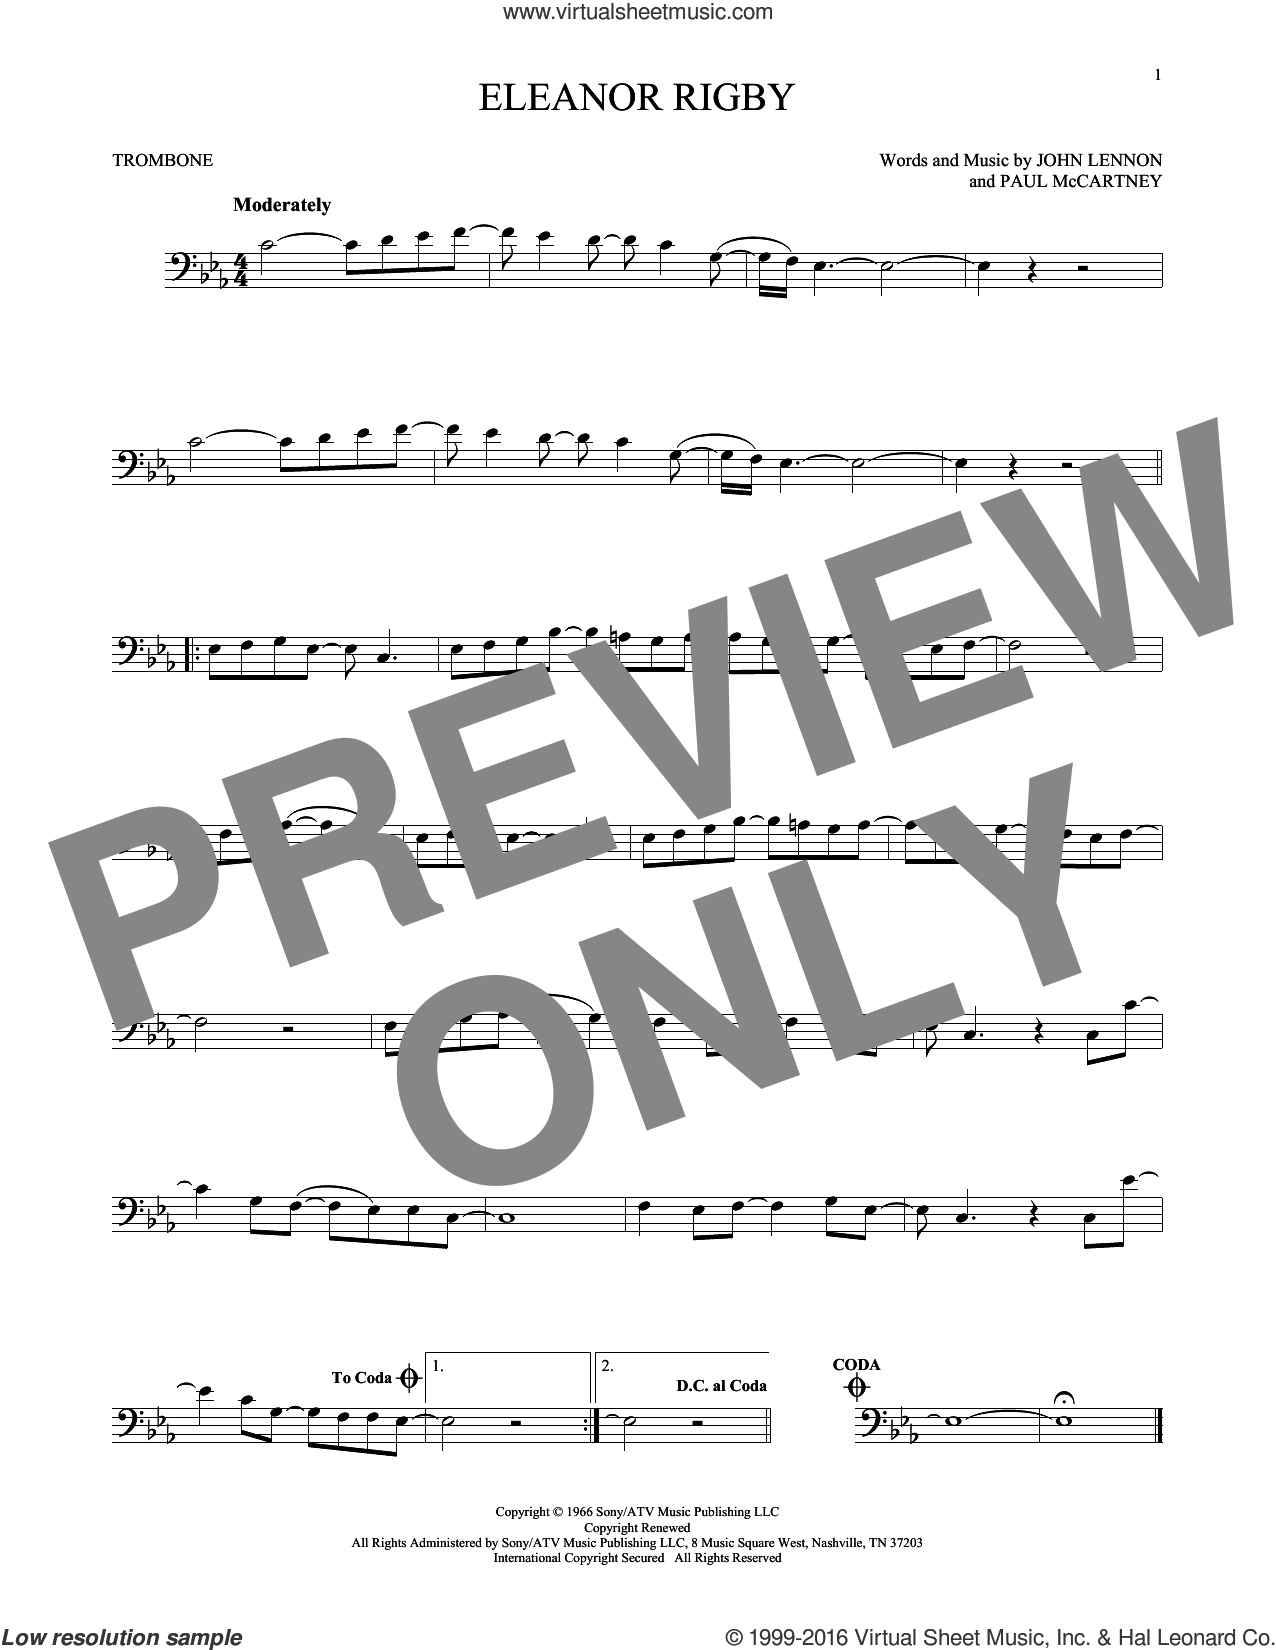 Eleanor Rigby sheet music for trombone solo by The Beatles, David Cook, John Lennon and Paul McCartney, intermediate skill level